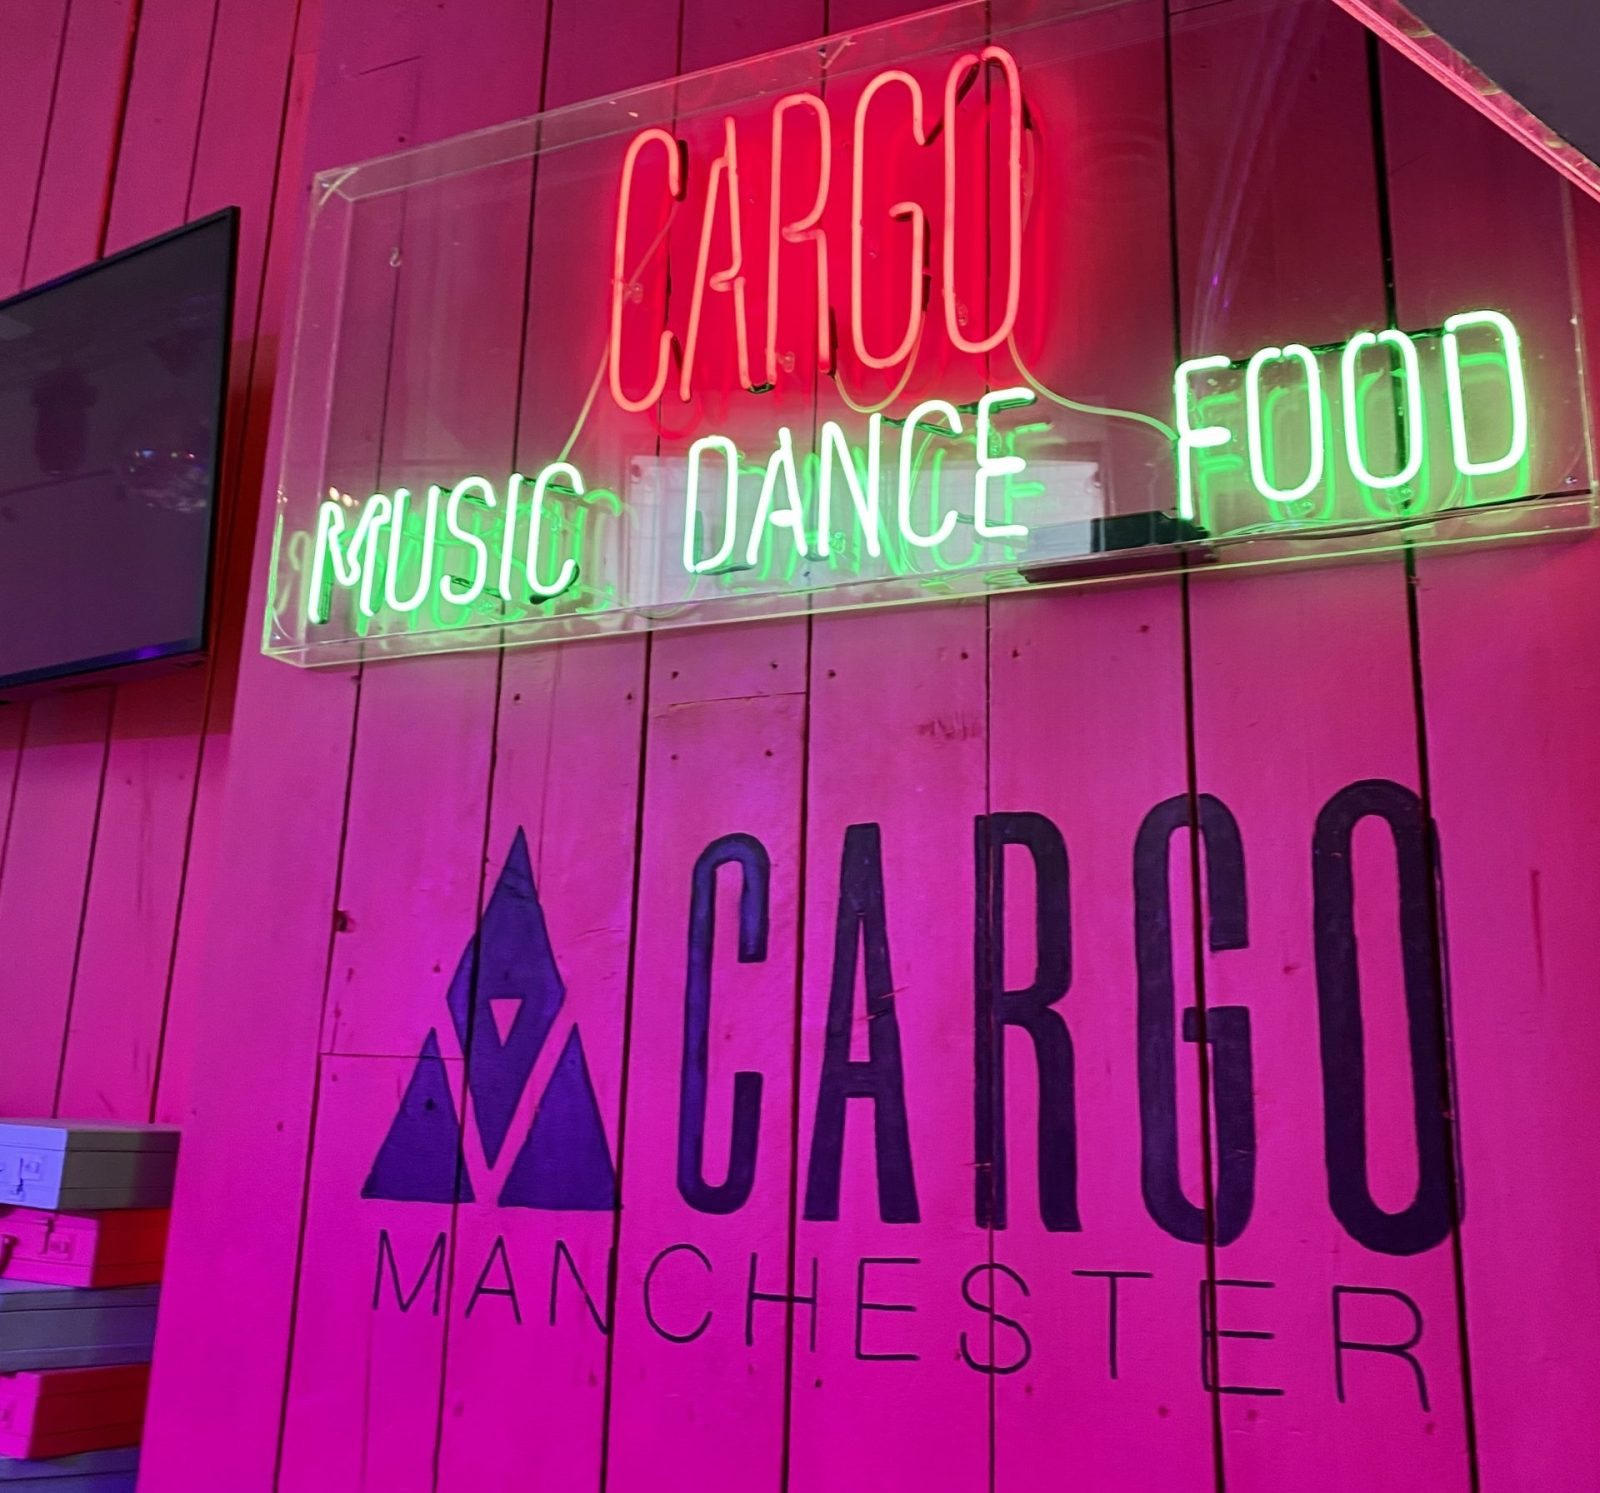 Manchester's newest nightclub Cargo is keeping the party going at Printworks, The Manc